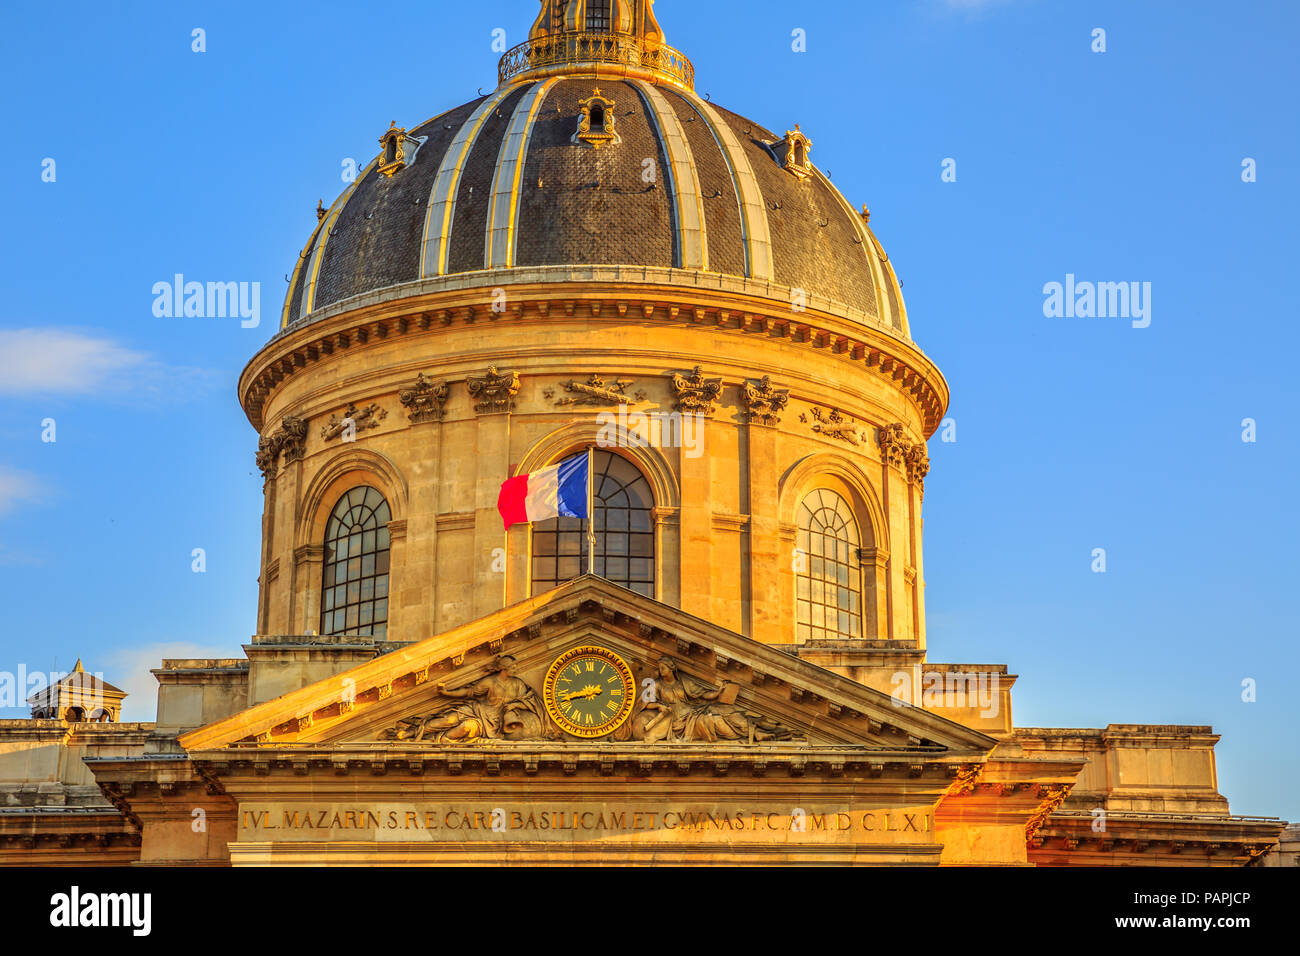 Details of central dome with French Flag of Institut de France building, a French learned society group of five academies in Paris, France, Europe. Sunny day in the blue sky. - Stock Image